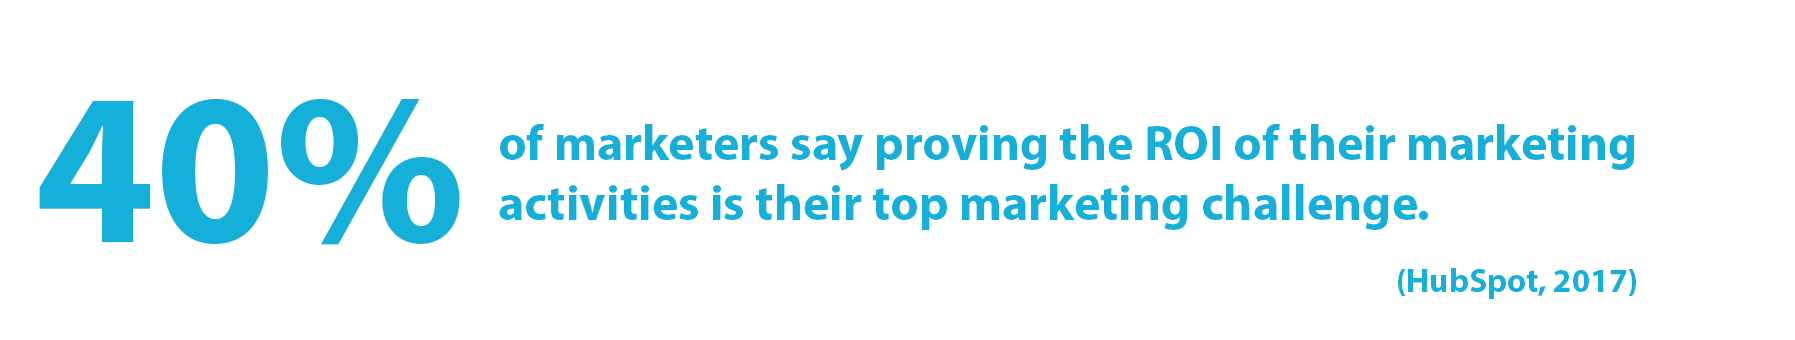 Statistic: 40% of marketers say proving the ROI of their marketing activities is their top marketing challenge. (HubSpot, 2017)